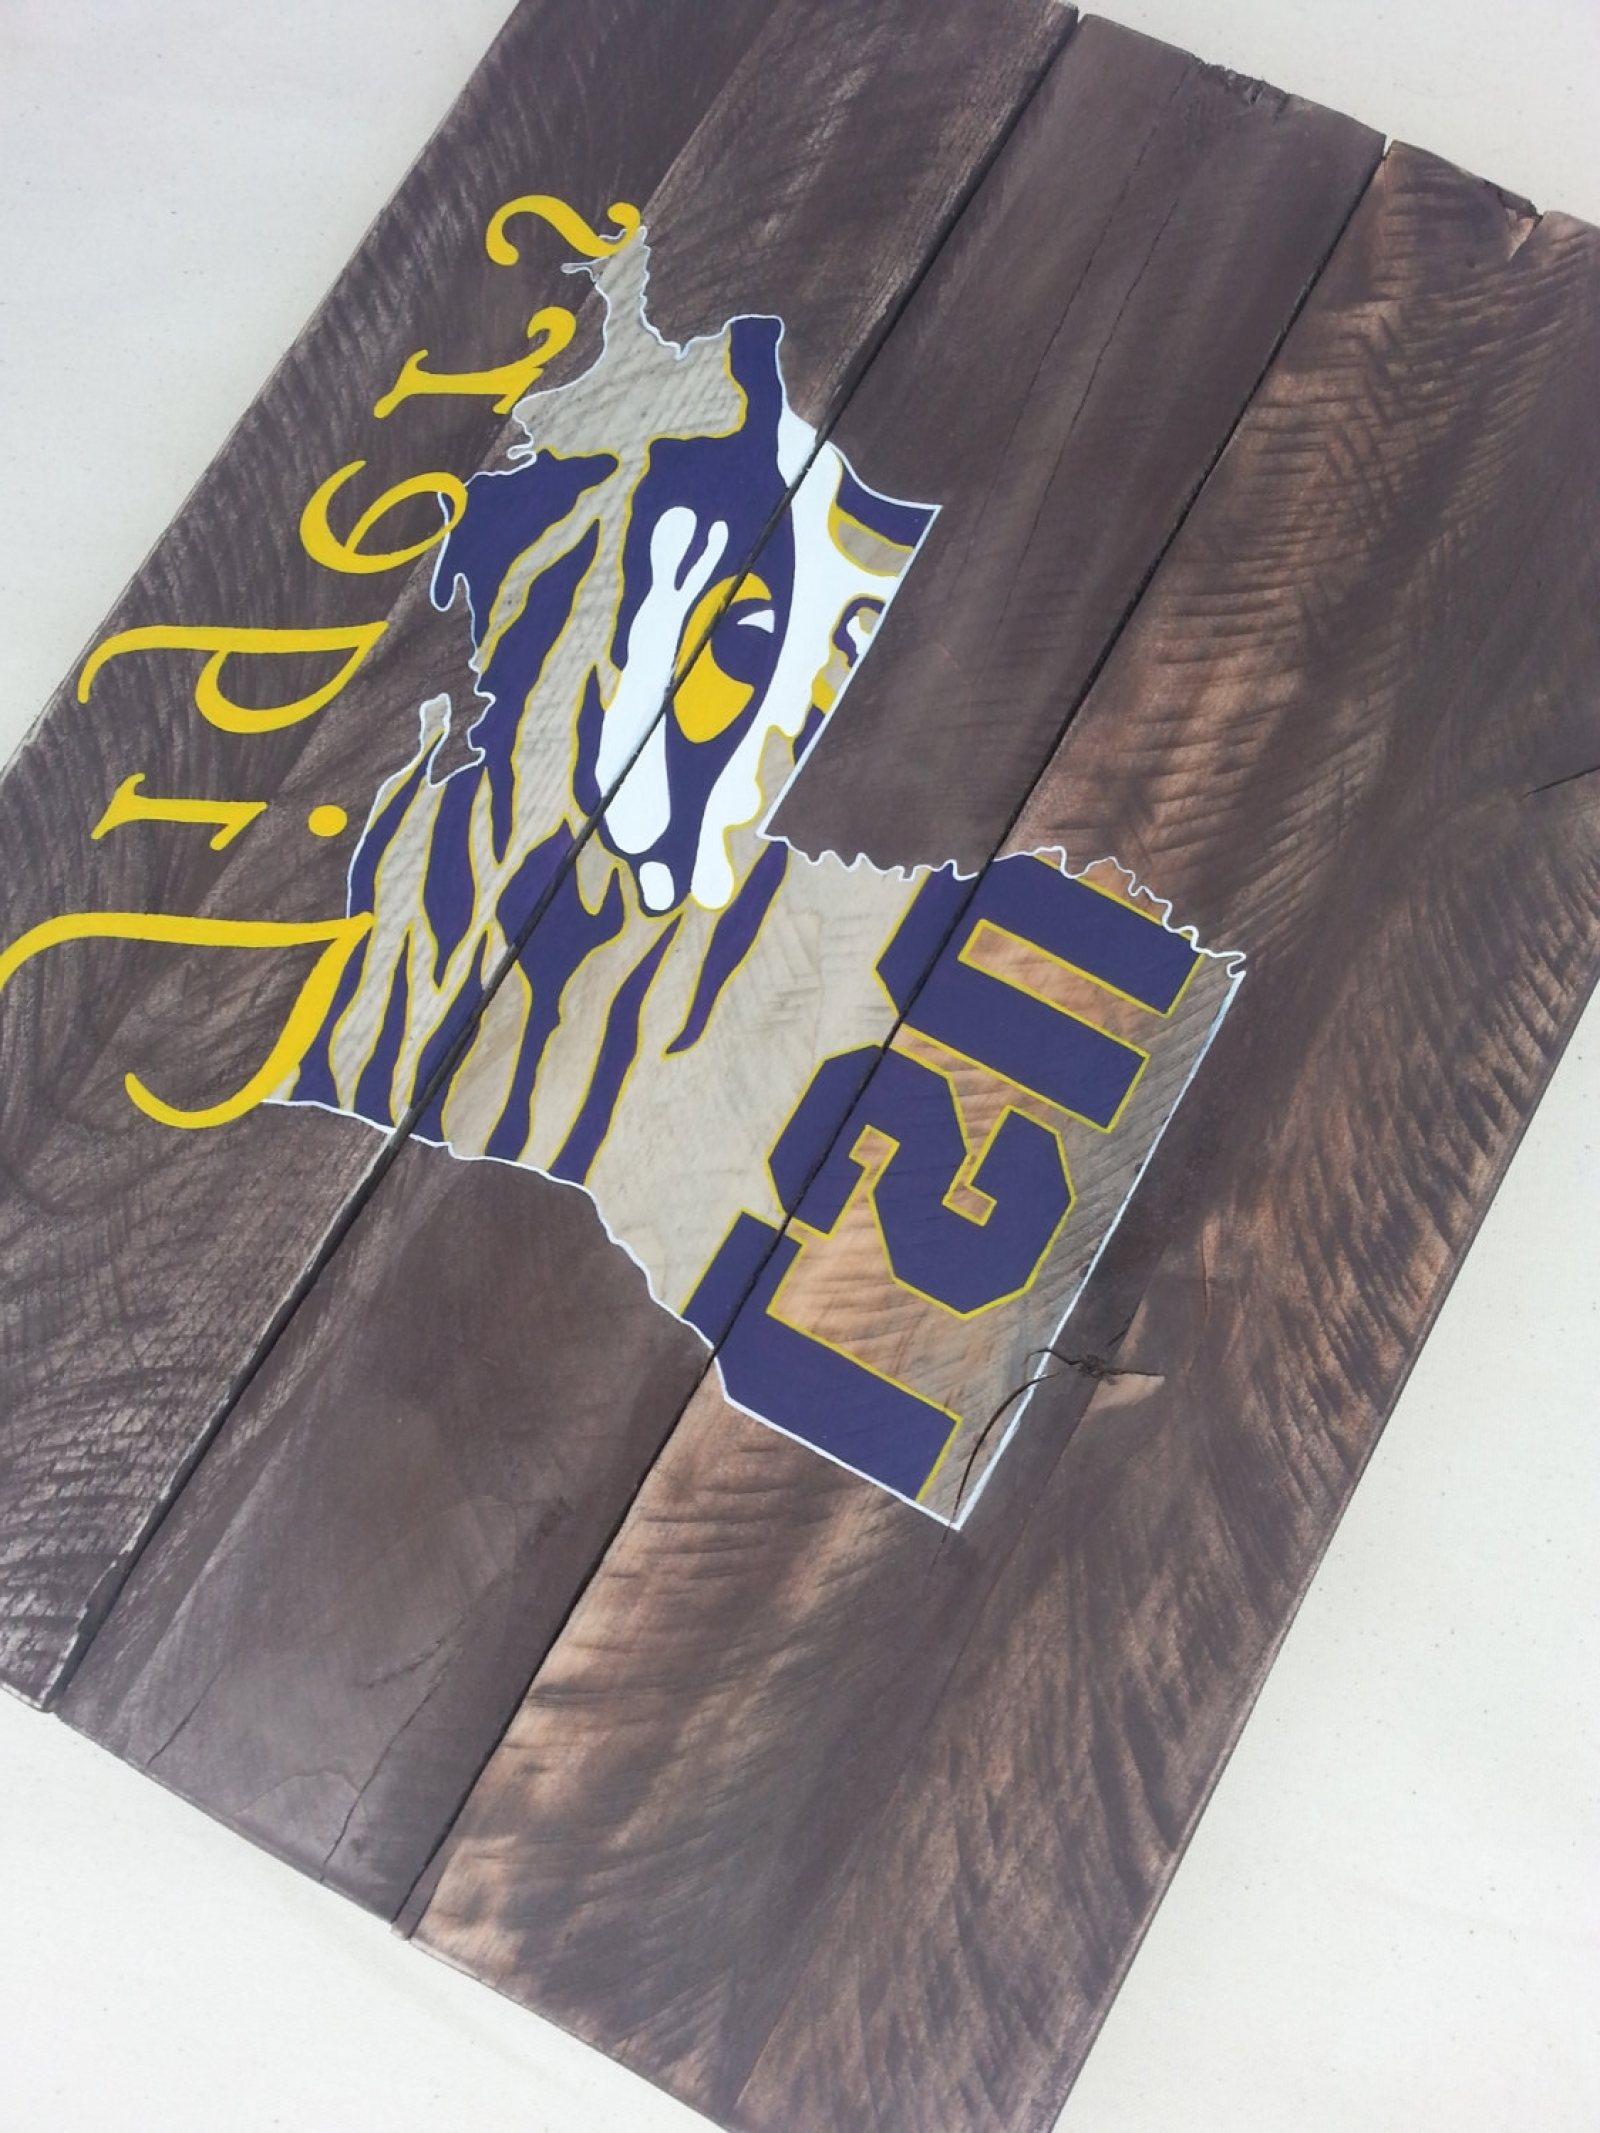 Lsu Tiger Eye Hand Painted Pallet Art Or Pallet Sign Original In Most Recent Lsu Wall Art (View 7 of 15)